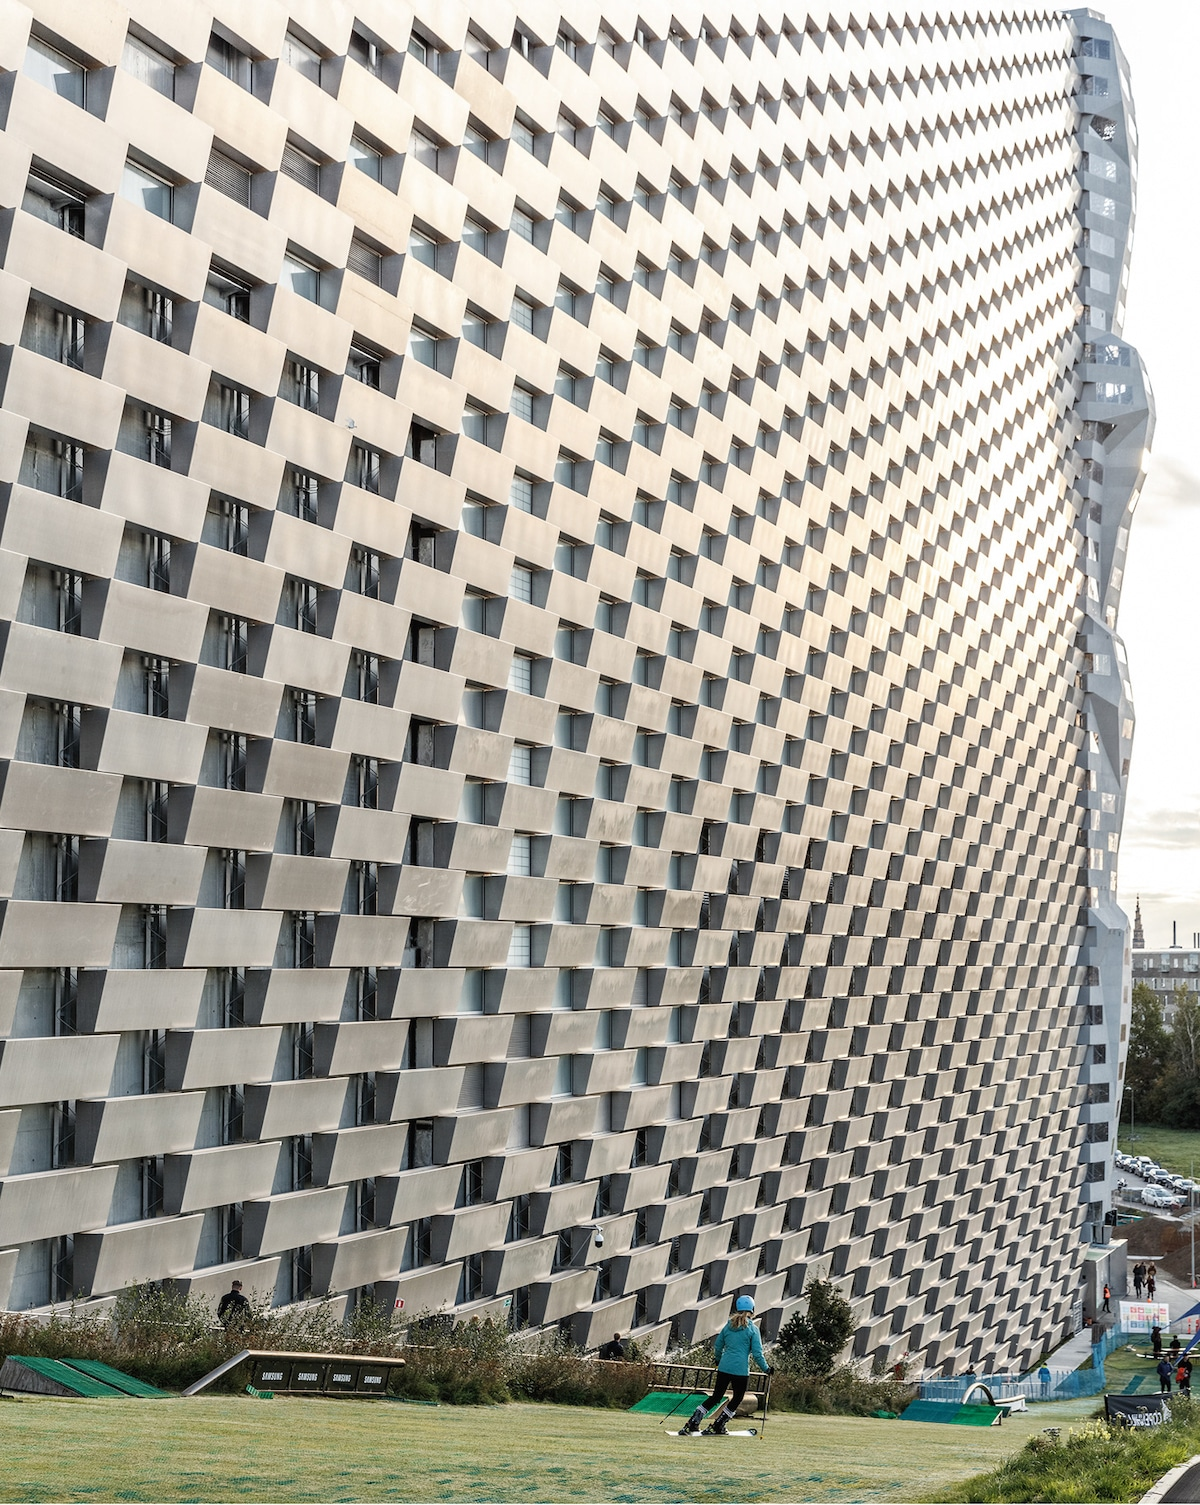 Façade from Slope - Bjarke Ingel Group's Copenhill Is a Power Plant With a Ski Slope on Top